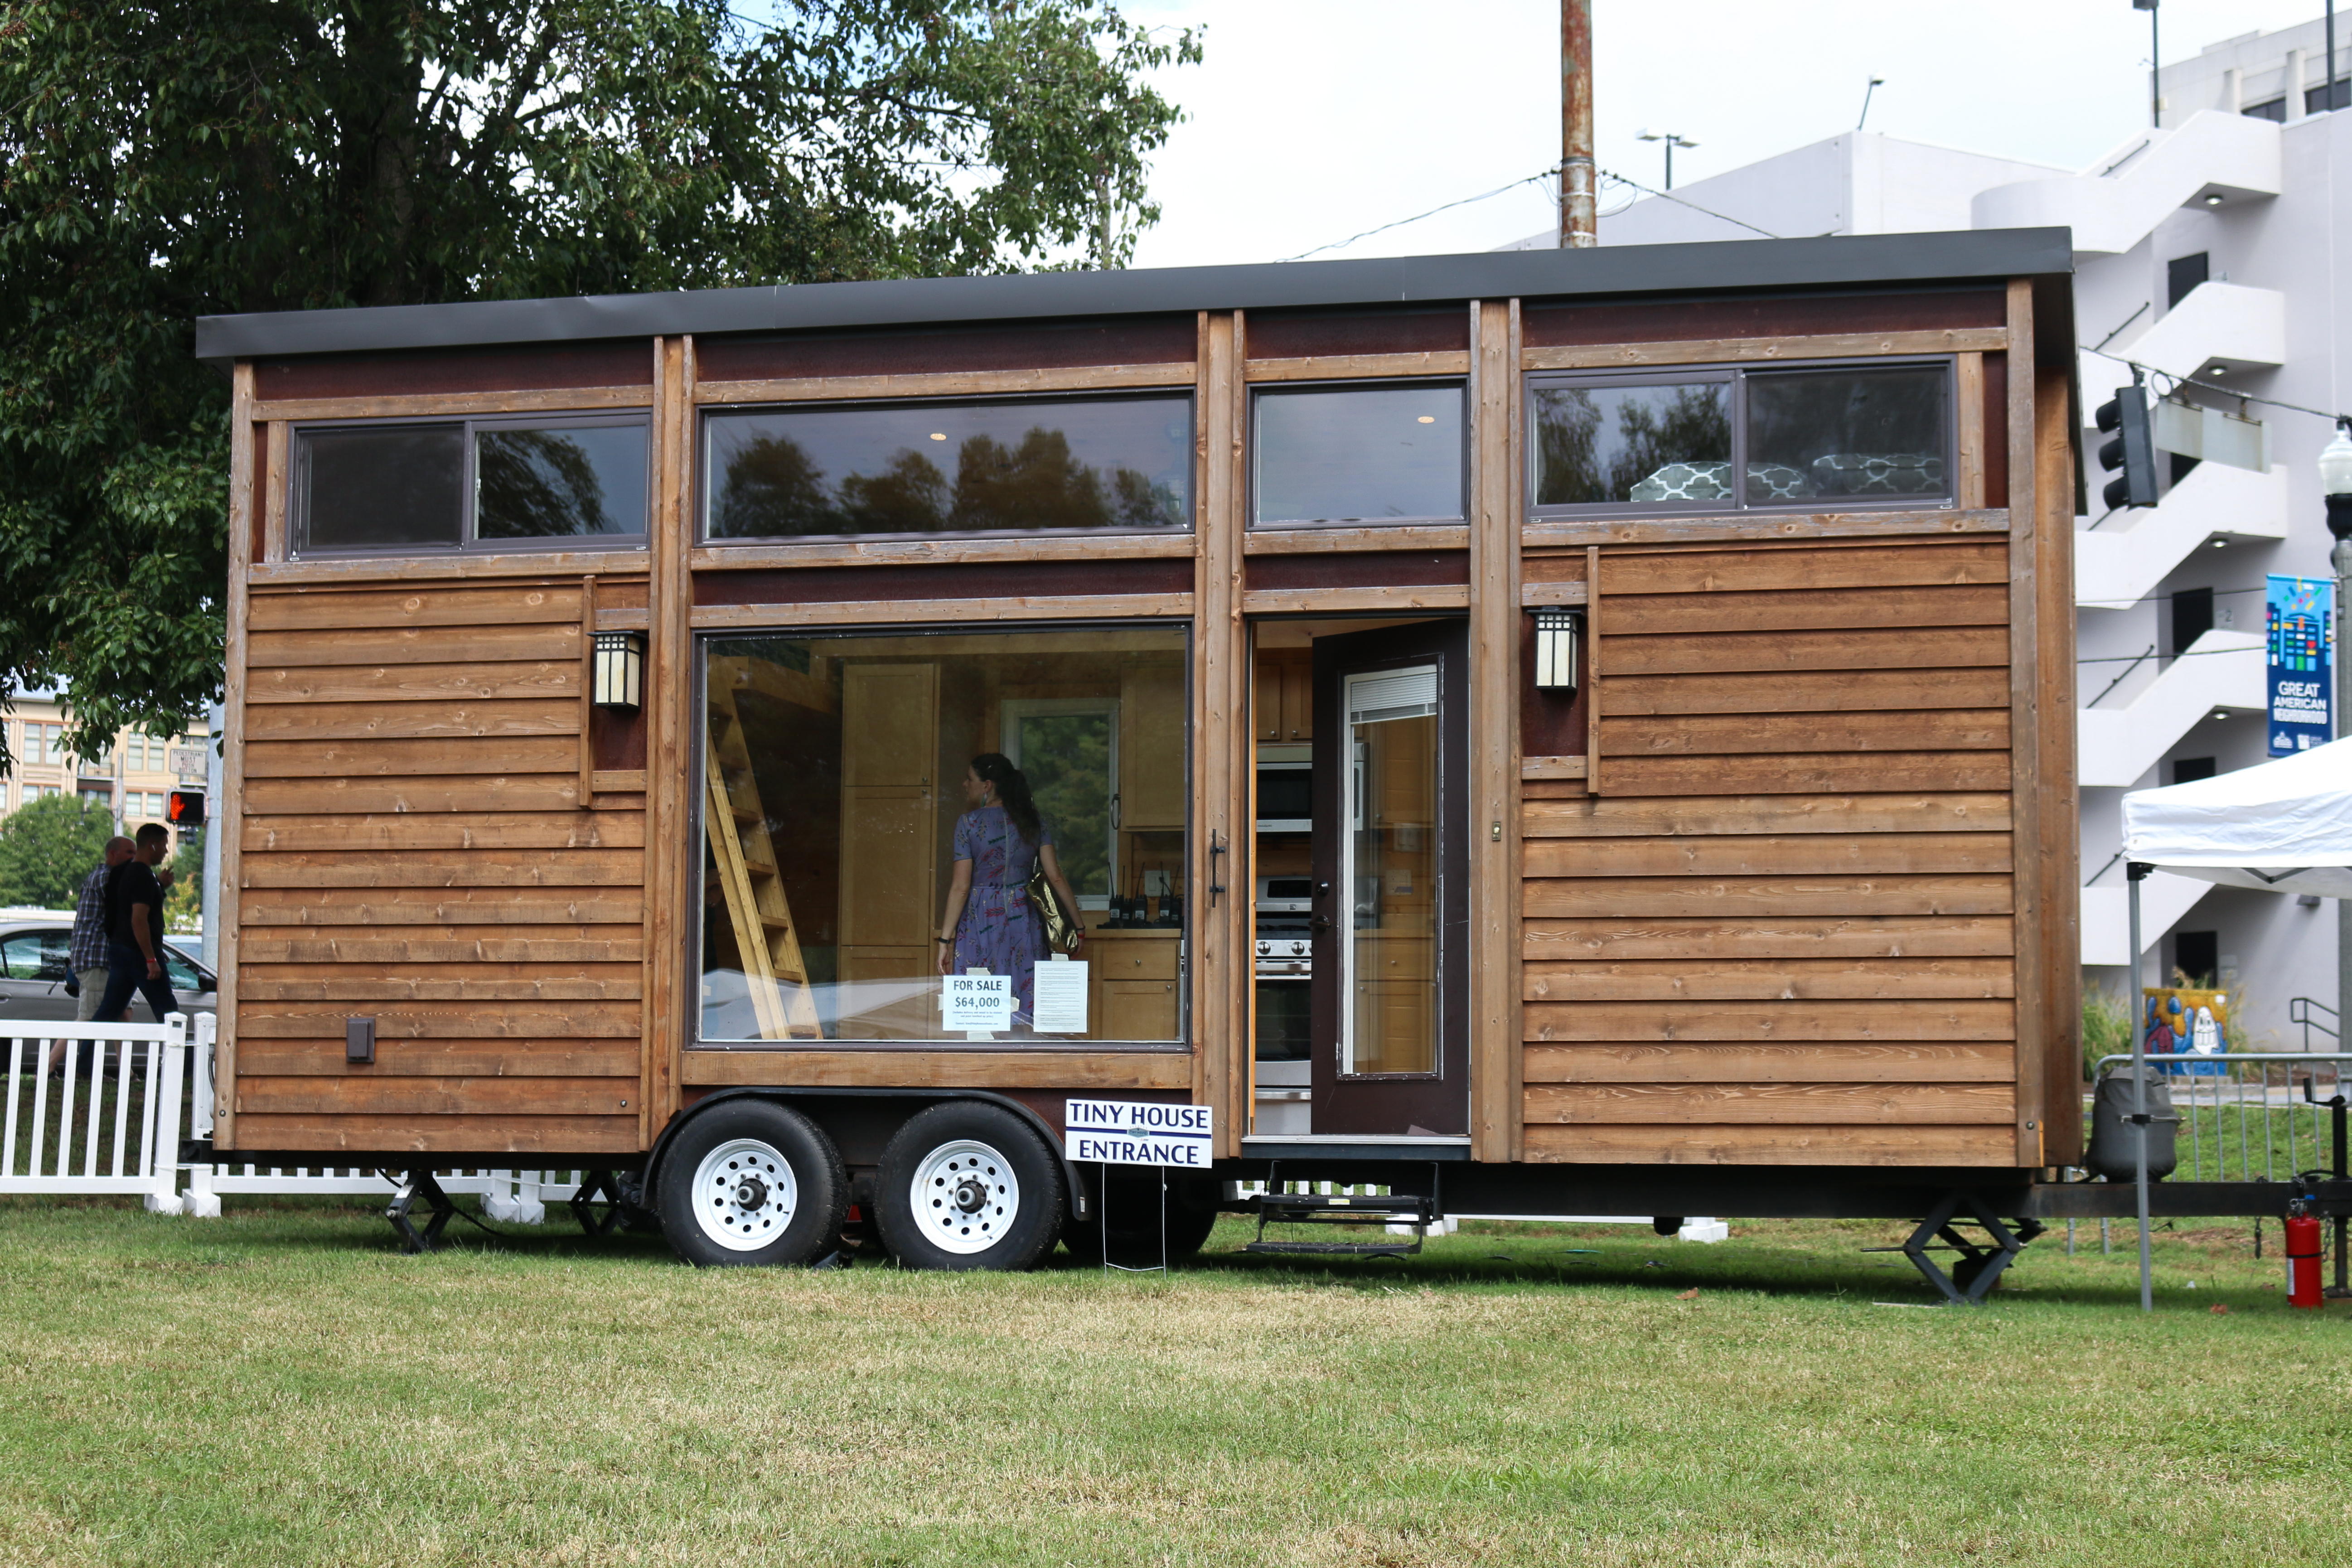 Decatur Festival Showcases Tiny Homes | The Emory Wheel on mobile home townhouse, mobile tiny house on wheels, future living 2050 house, mobile home australia, mobile tiny house designs, mobile home small pull behind truck, mobile home photography, mobile home building, mobile homes insides bedrooms, mobile tiny house interior, mobile home travel, mobile home beach house, mobile home greenhouse, mobile home elevation, mobile homes small space, miniature pony inside house, mobile home green, mobile home money, making a mobile home look like a house, mobile home guest house,